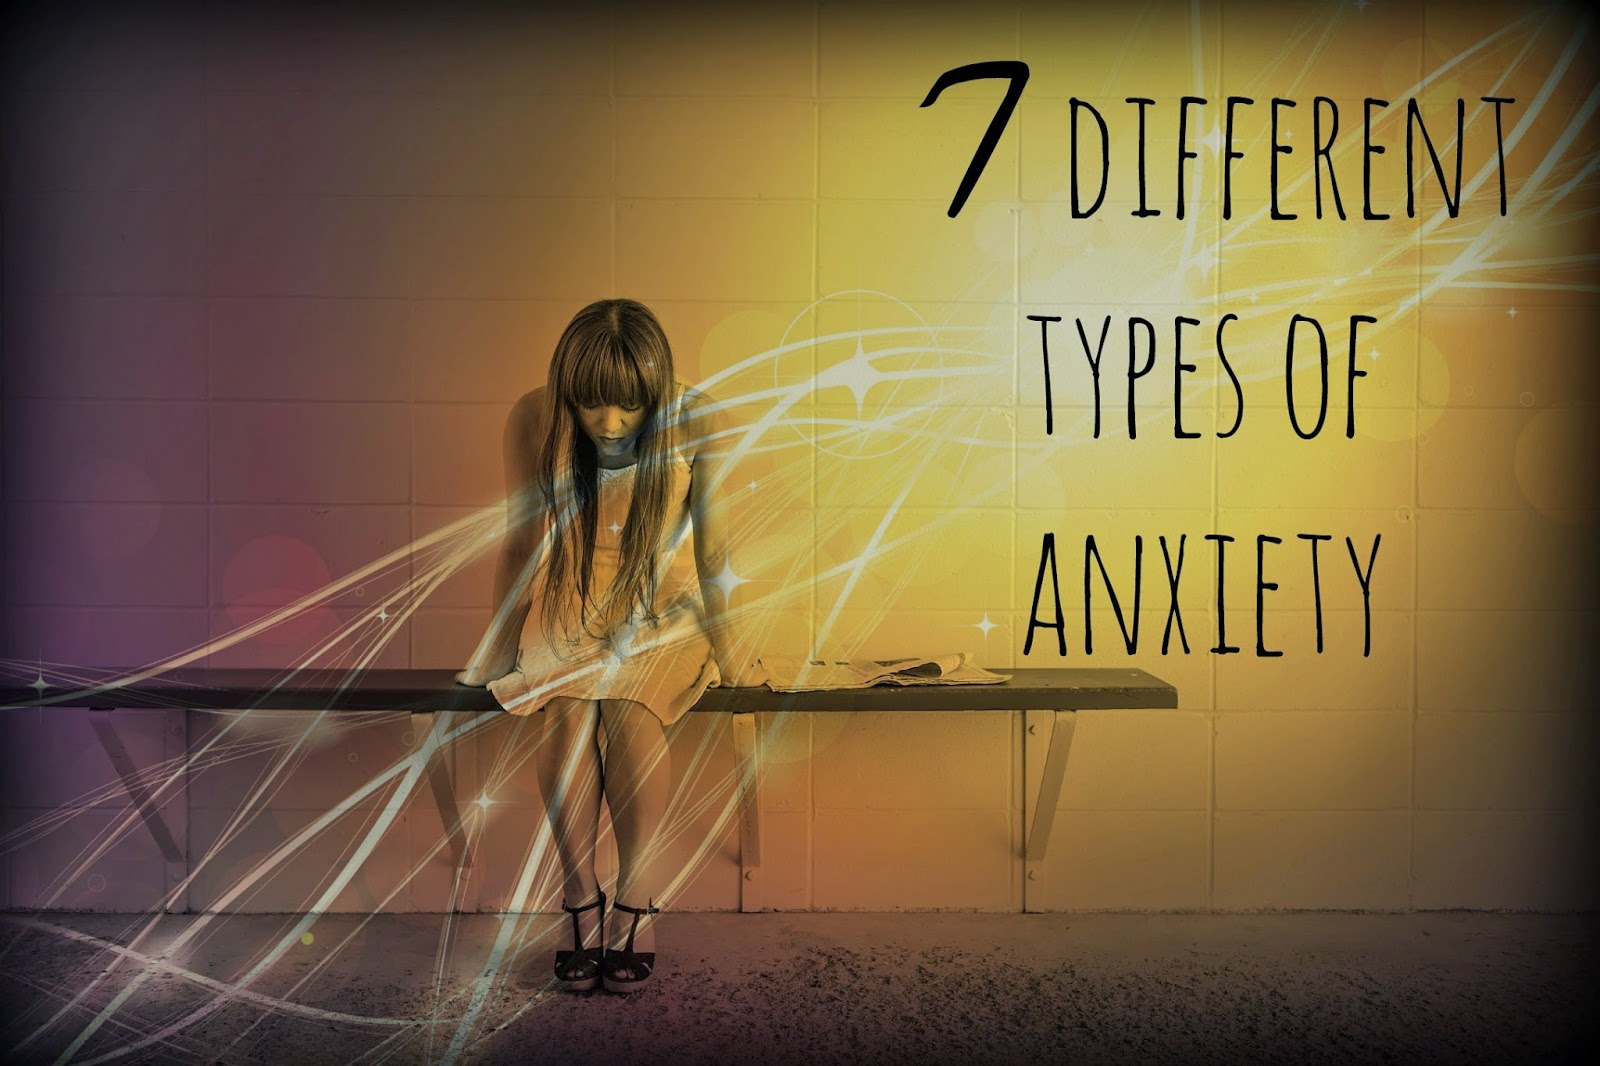 7 different types of anxiety